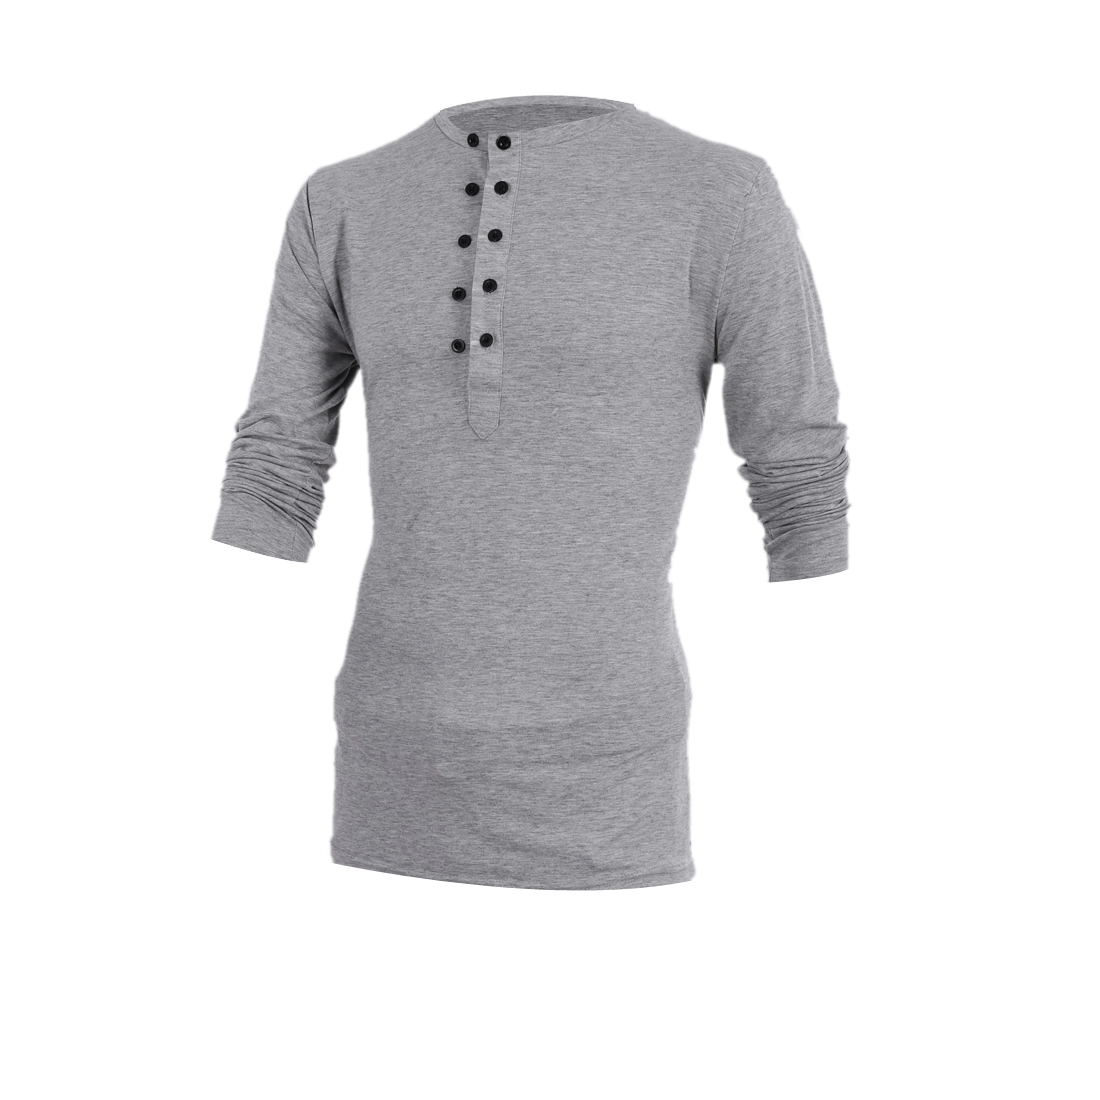 Mans New Fashion Light Gray Double-Breasted Front Spring Top Shirt M